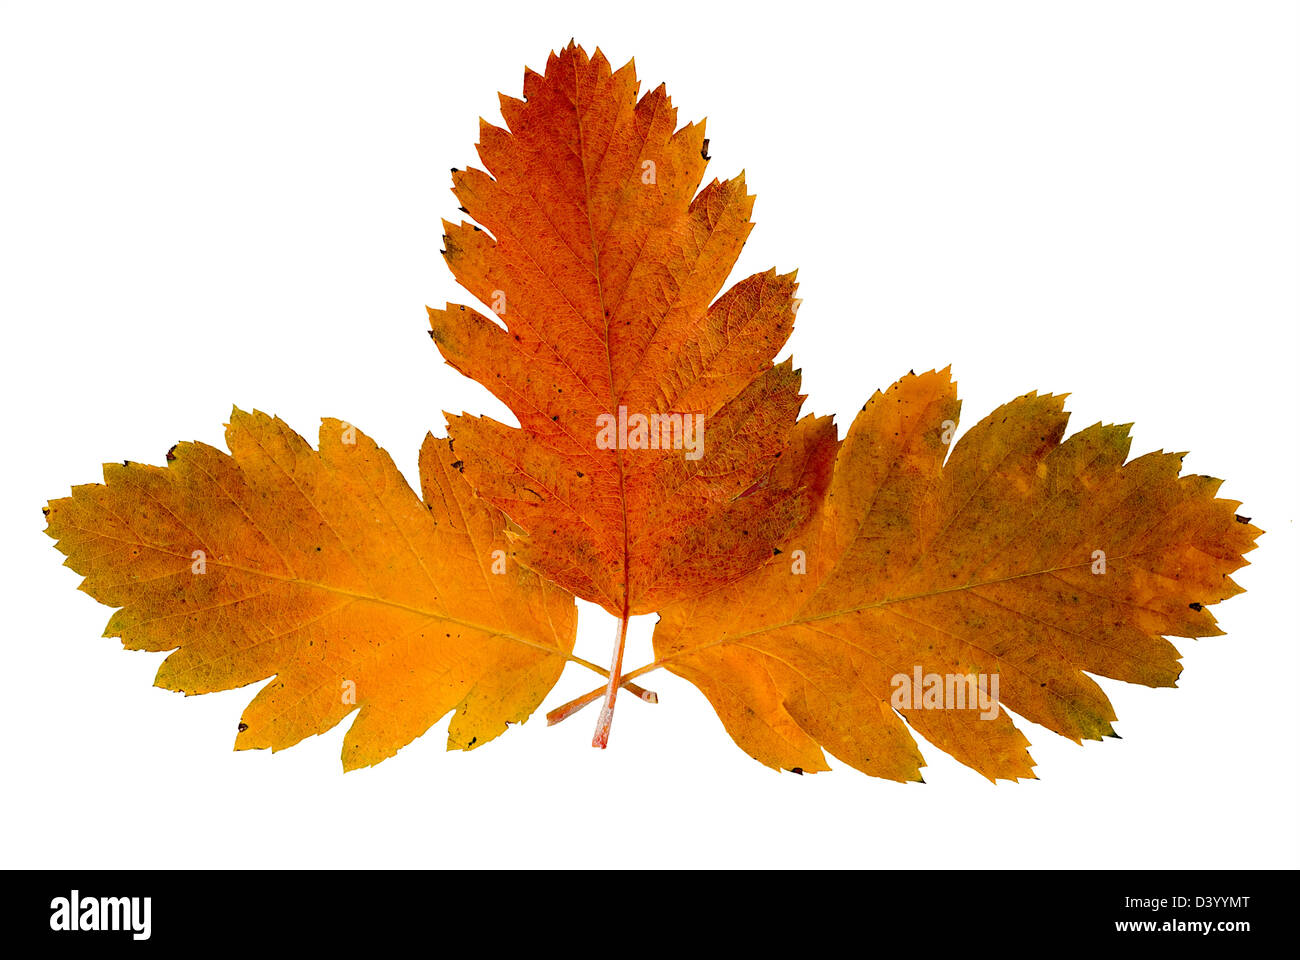 Three leaf of a rowan-tree are photographed on the white background Stock Photo